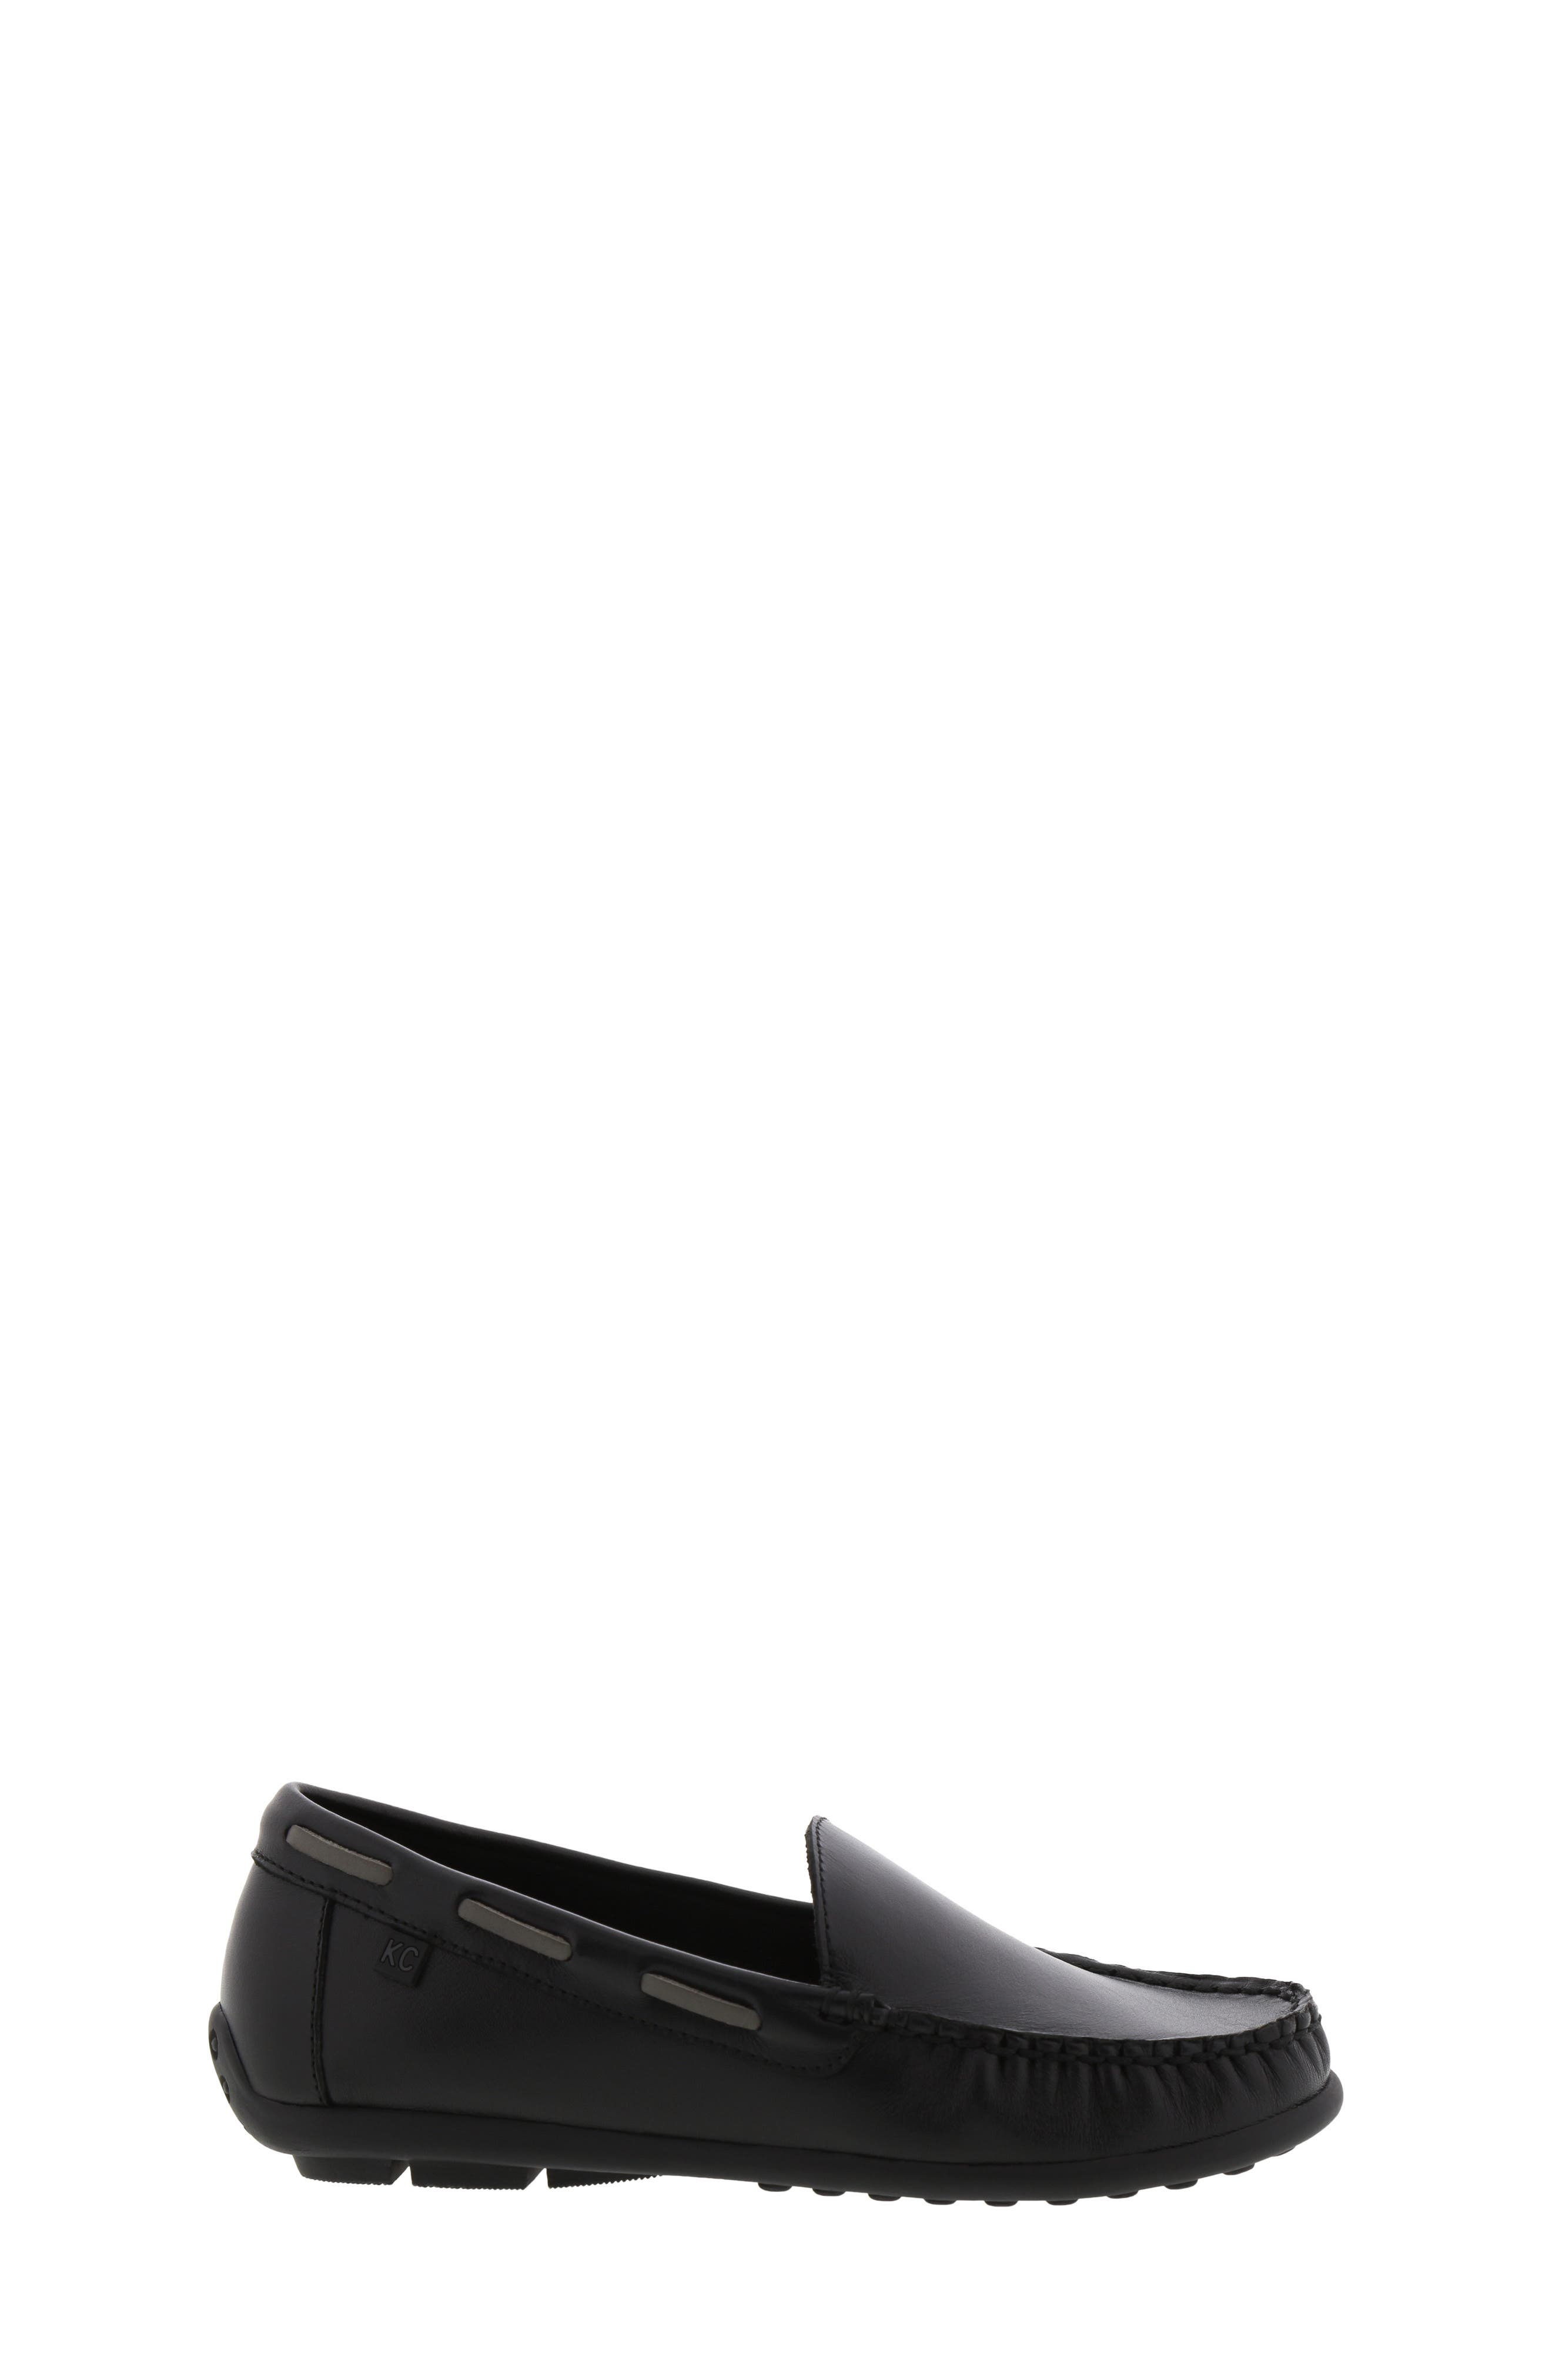 Helio Shift Driving Moccasin,                             Alternate thumbnail 3, color,                             BLACK SMOOTH